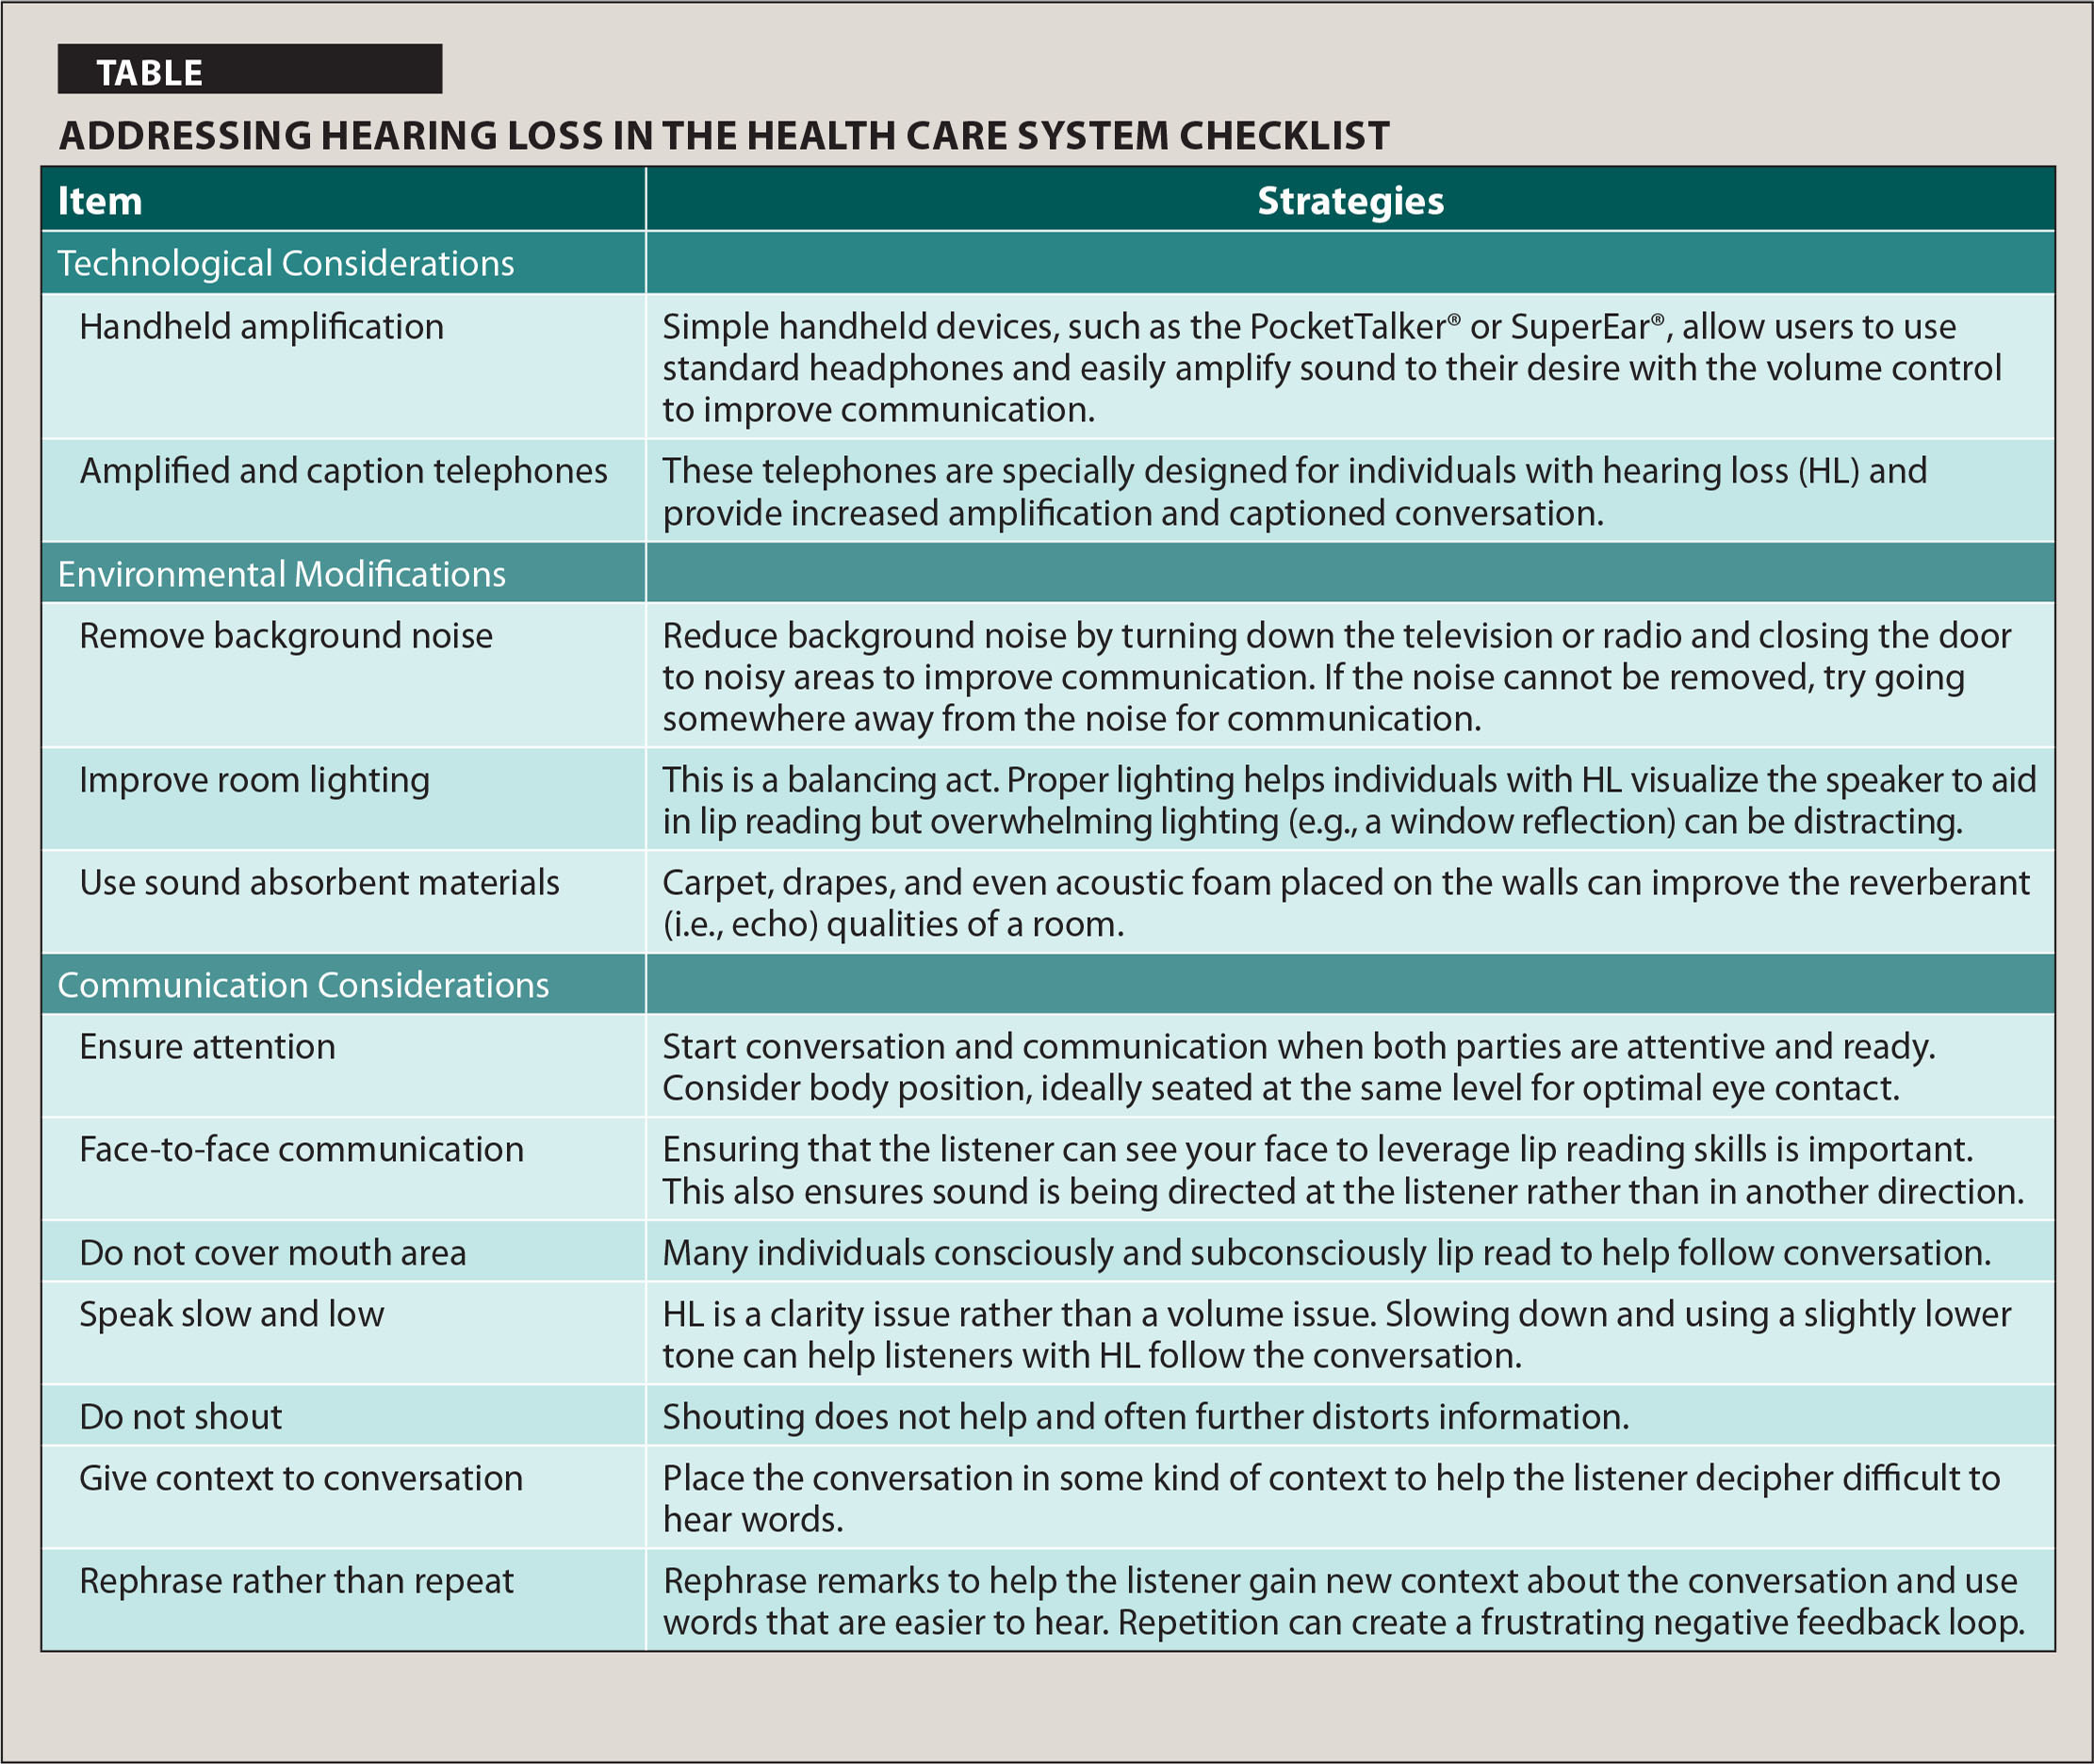 Addressing Hearing Loss in the Health Care System Checklist